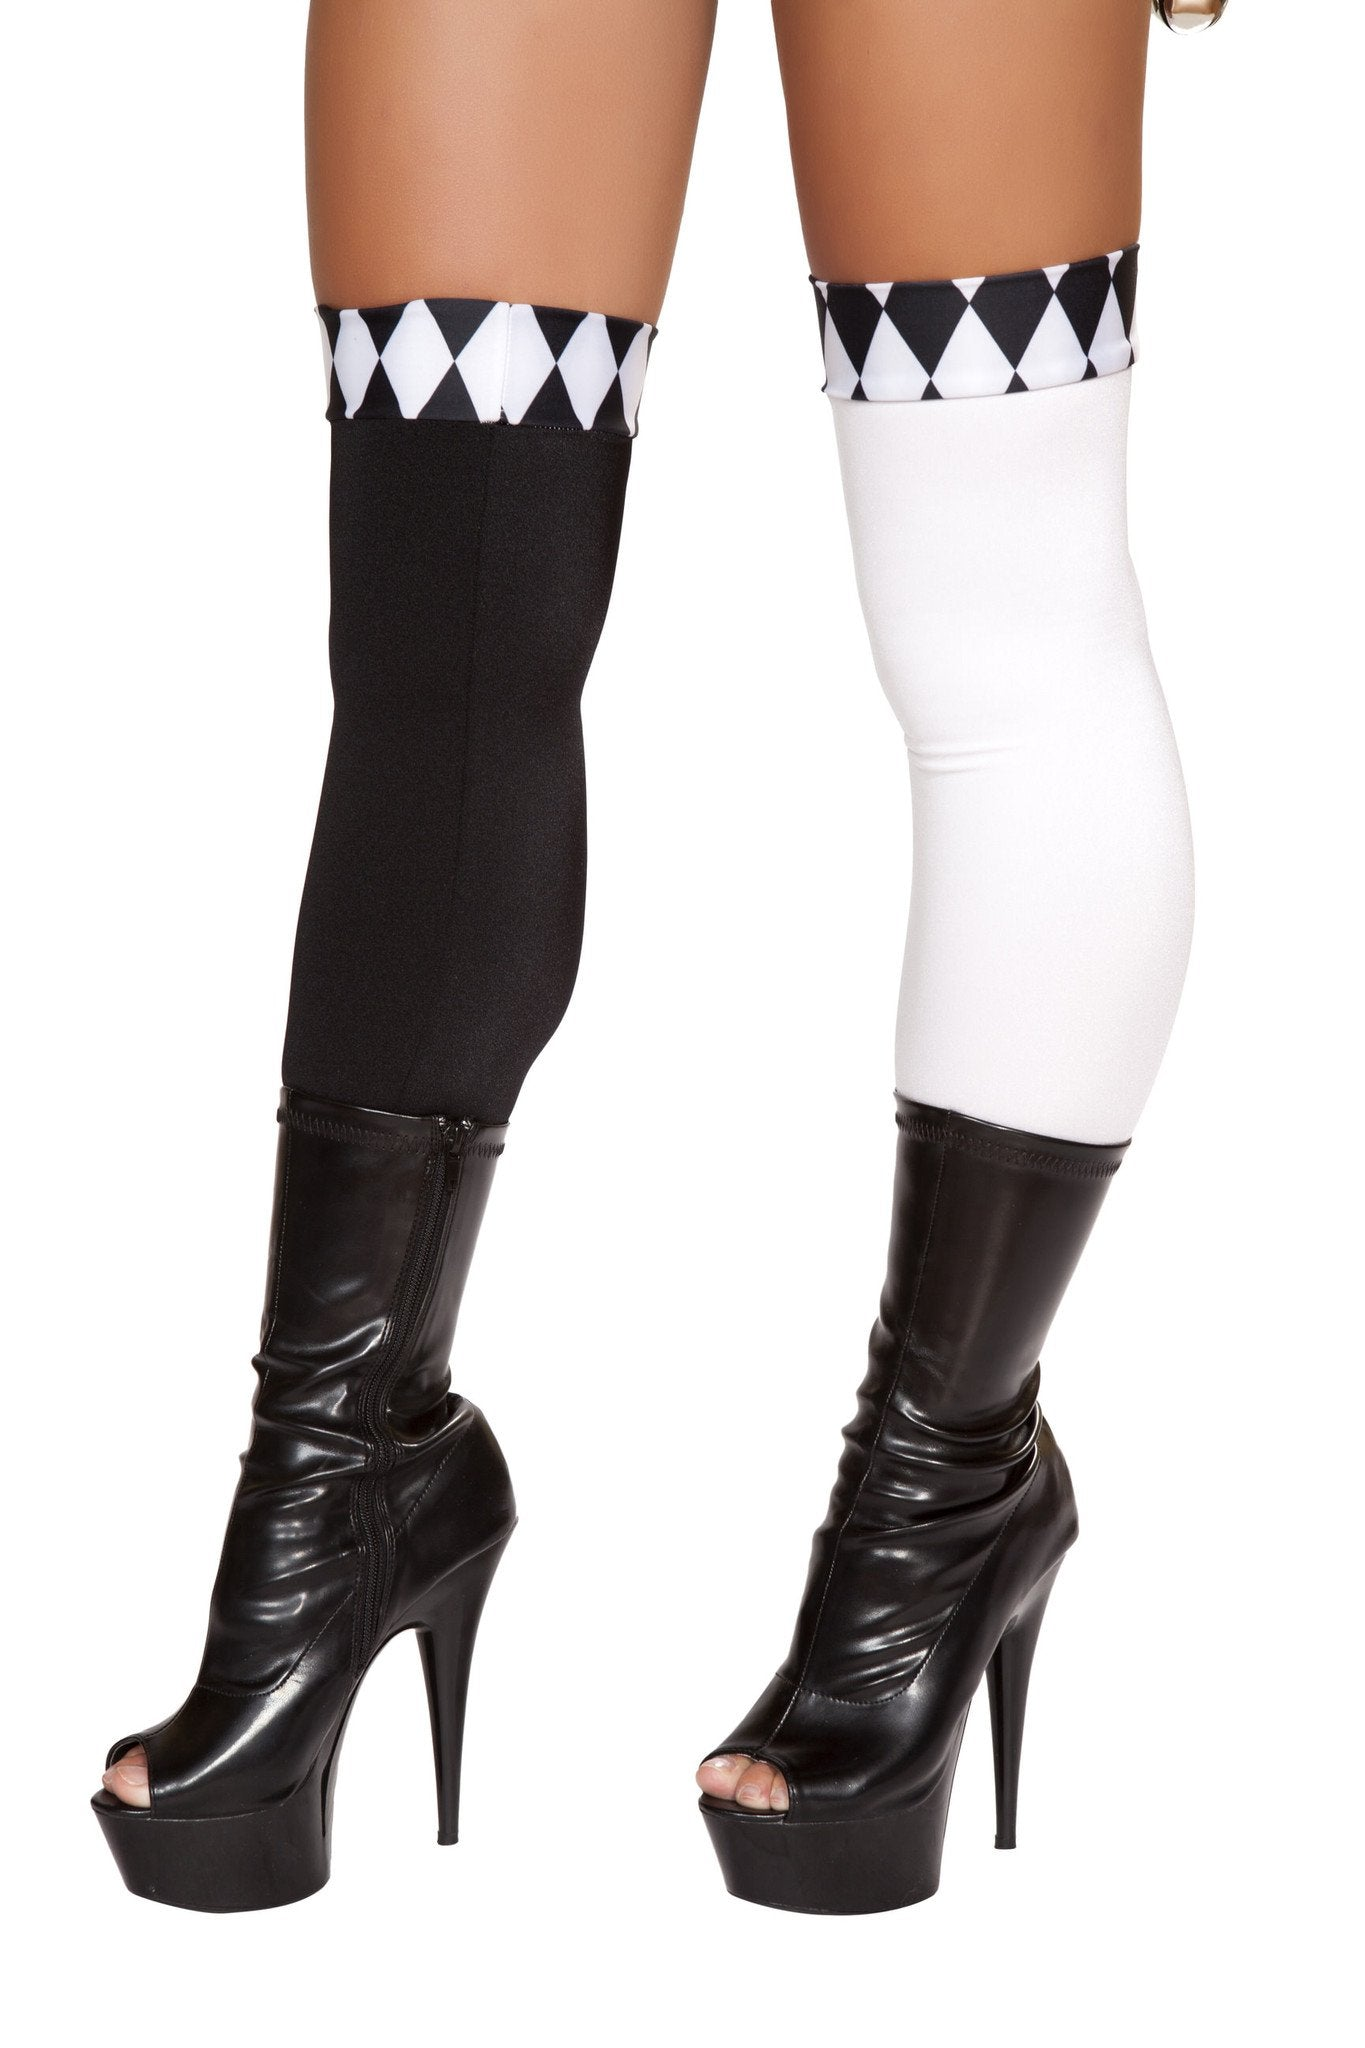 Wicked Jester Stockings - PlaythingsMiami